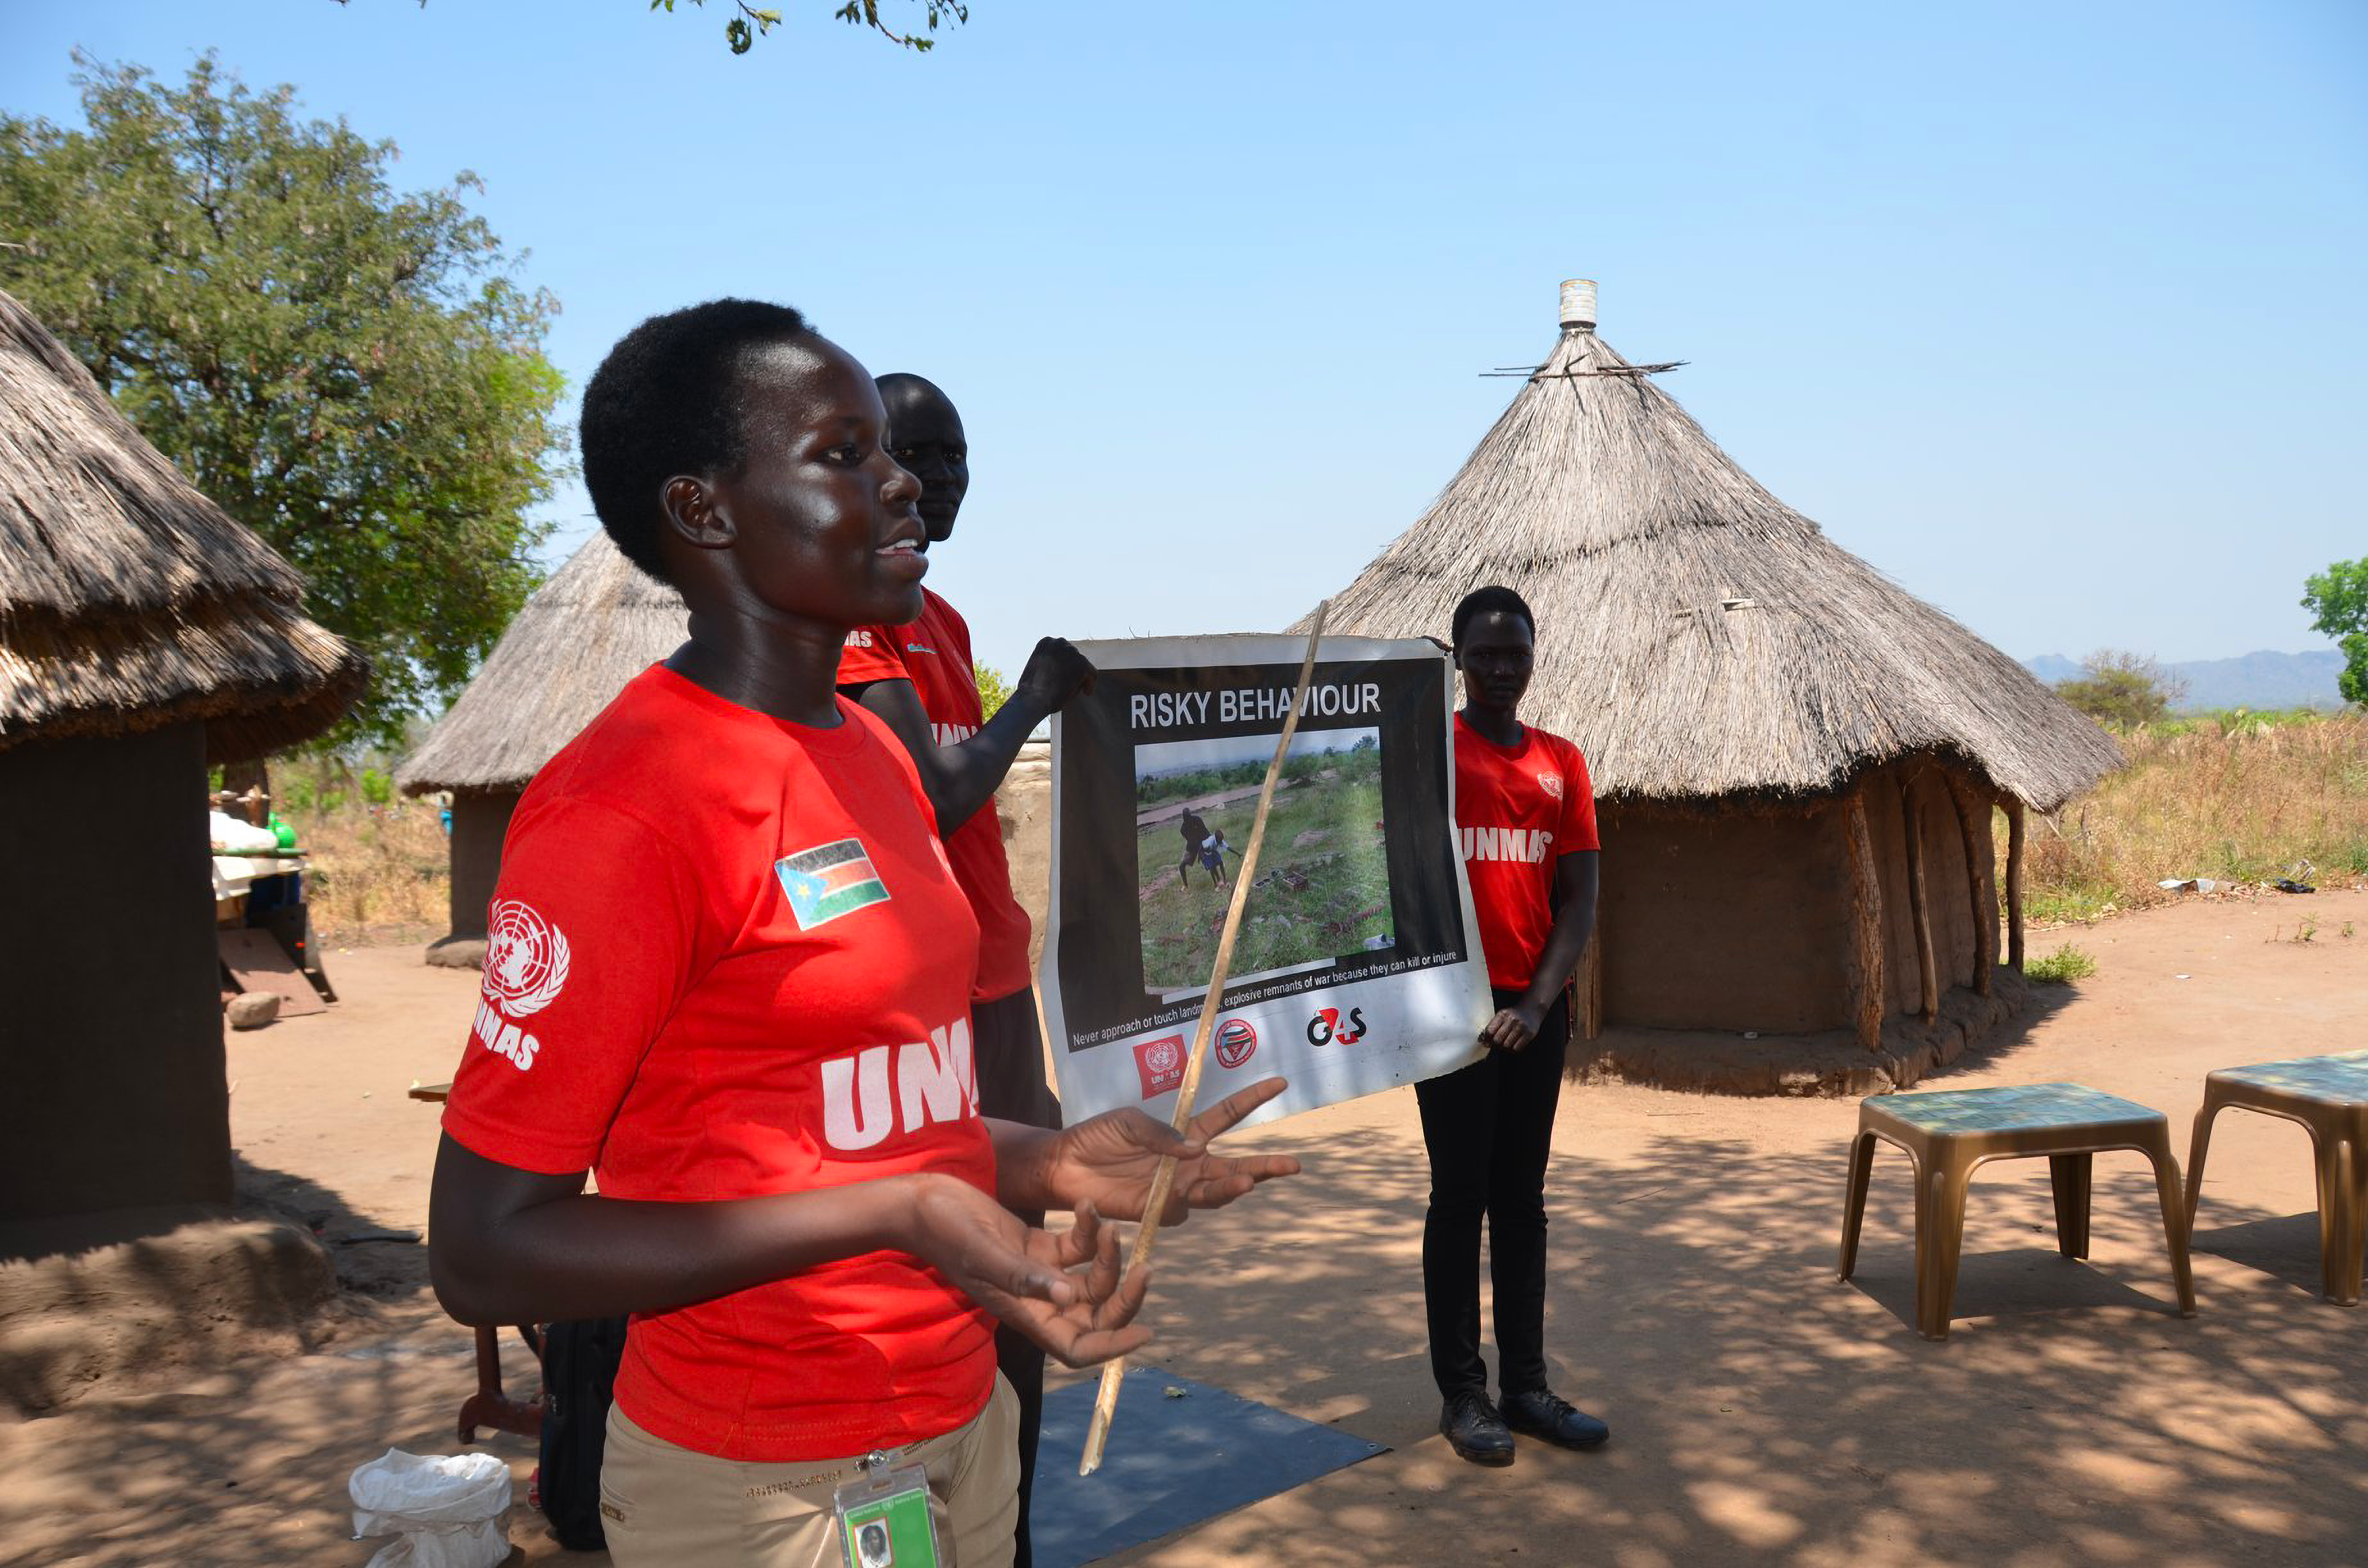 Mary Arok delivering a training session on explosive ordnance risk education in Birisi village, in the southern part of South Sudan. ©UNMISS